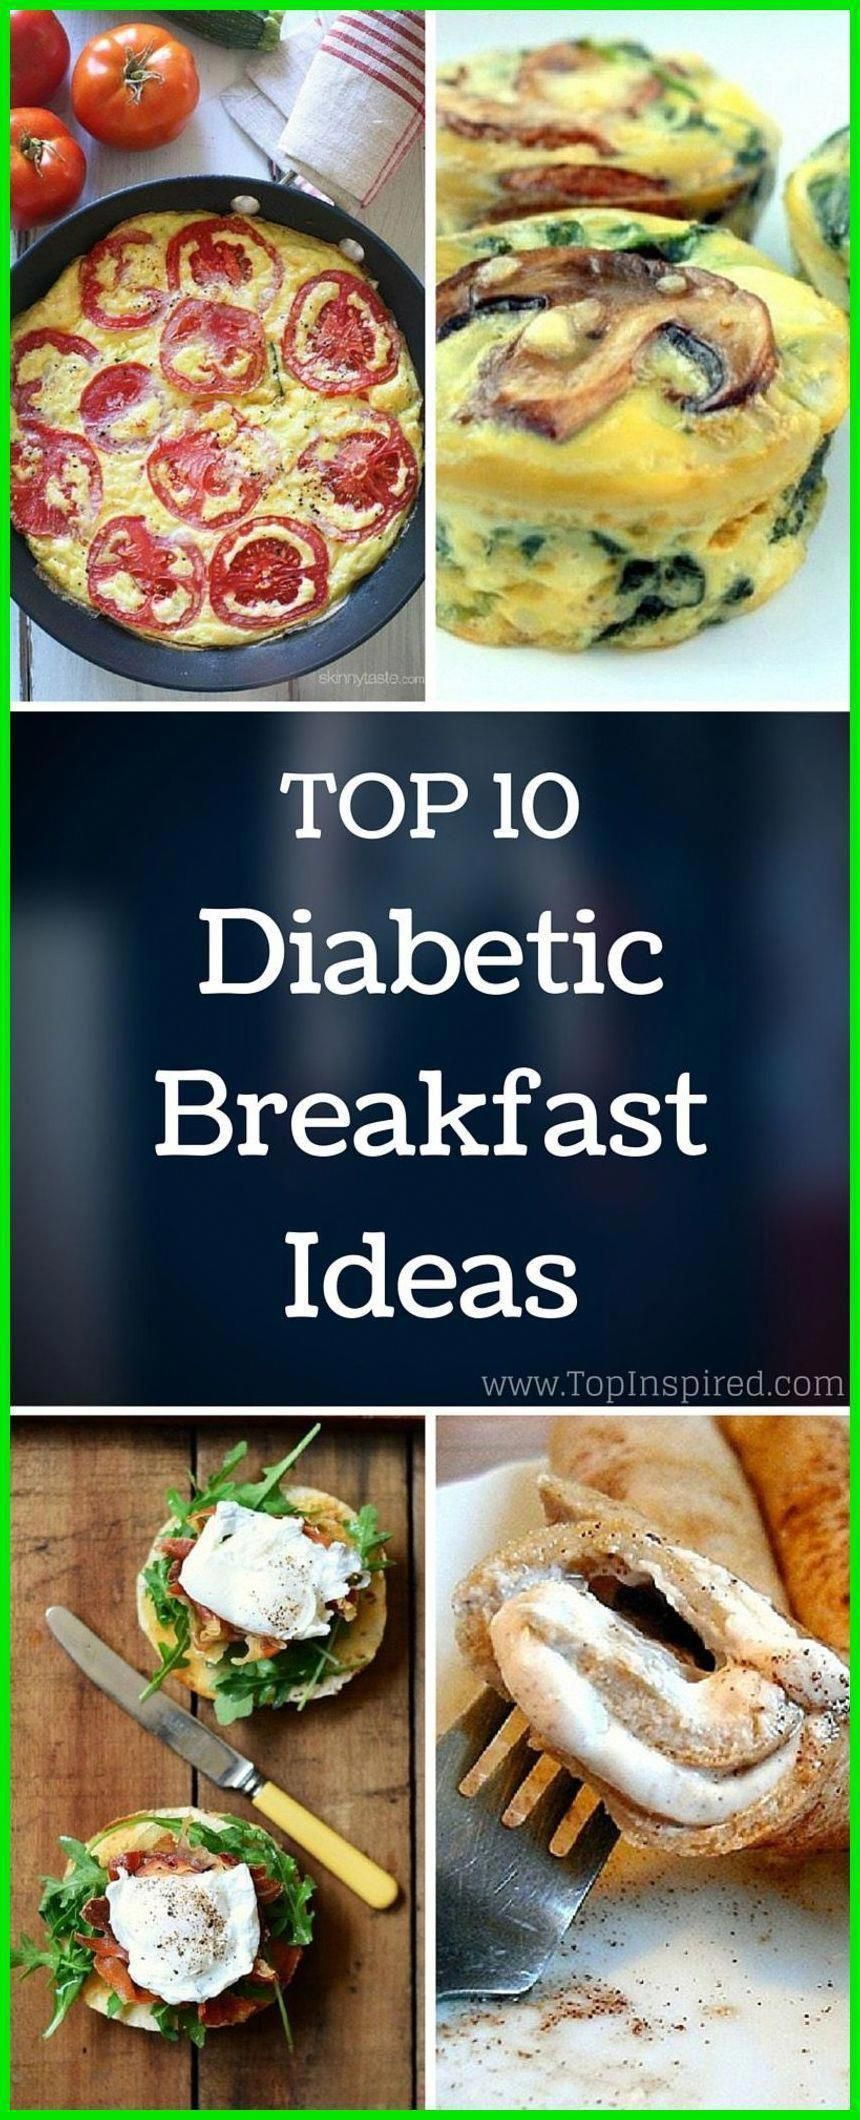 Easy Diabetic Recipes For Picky Eaters